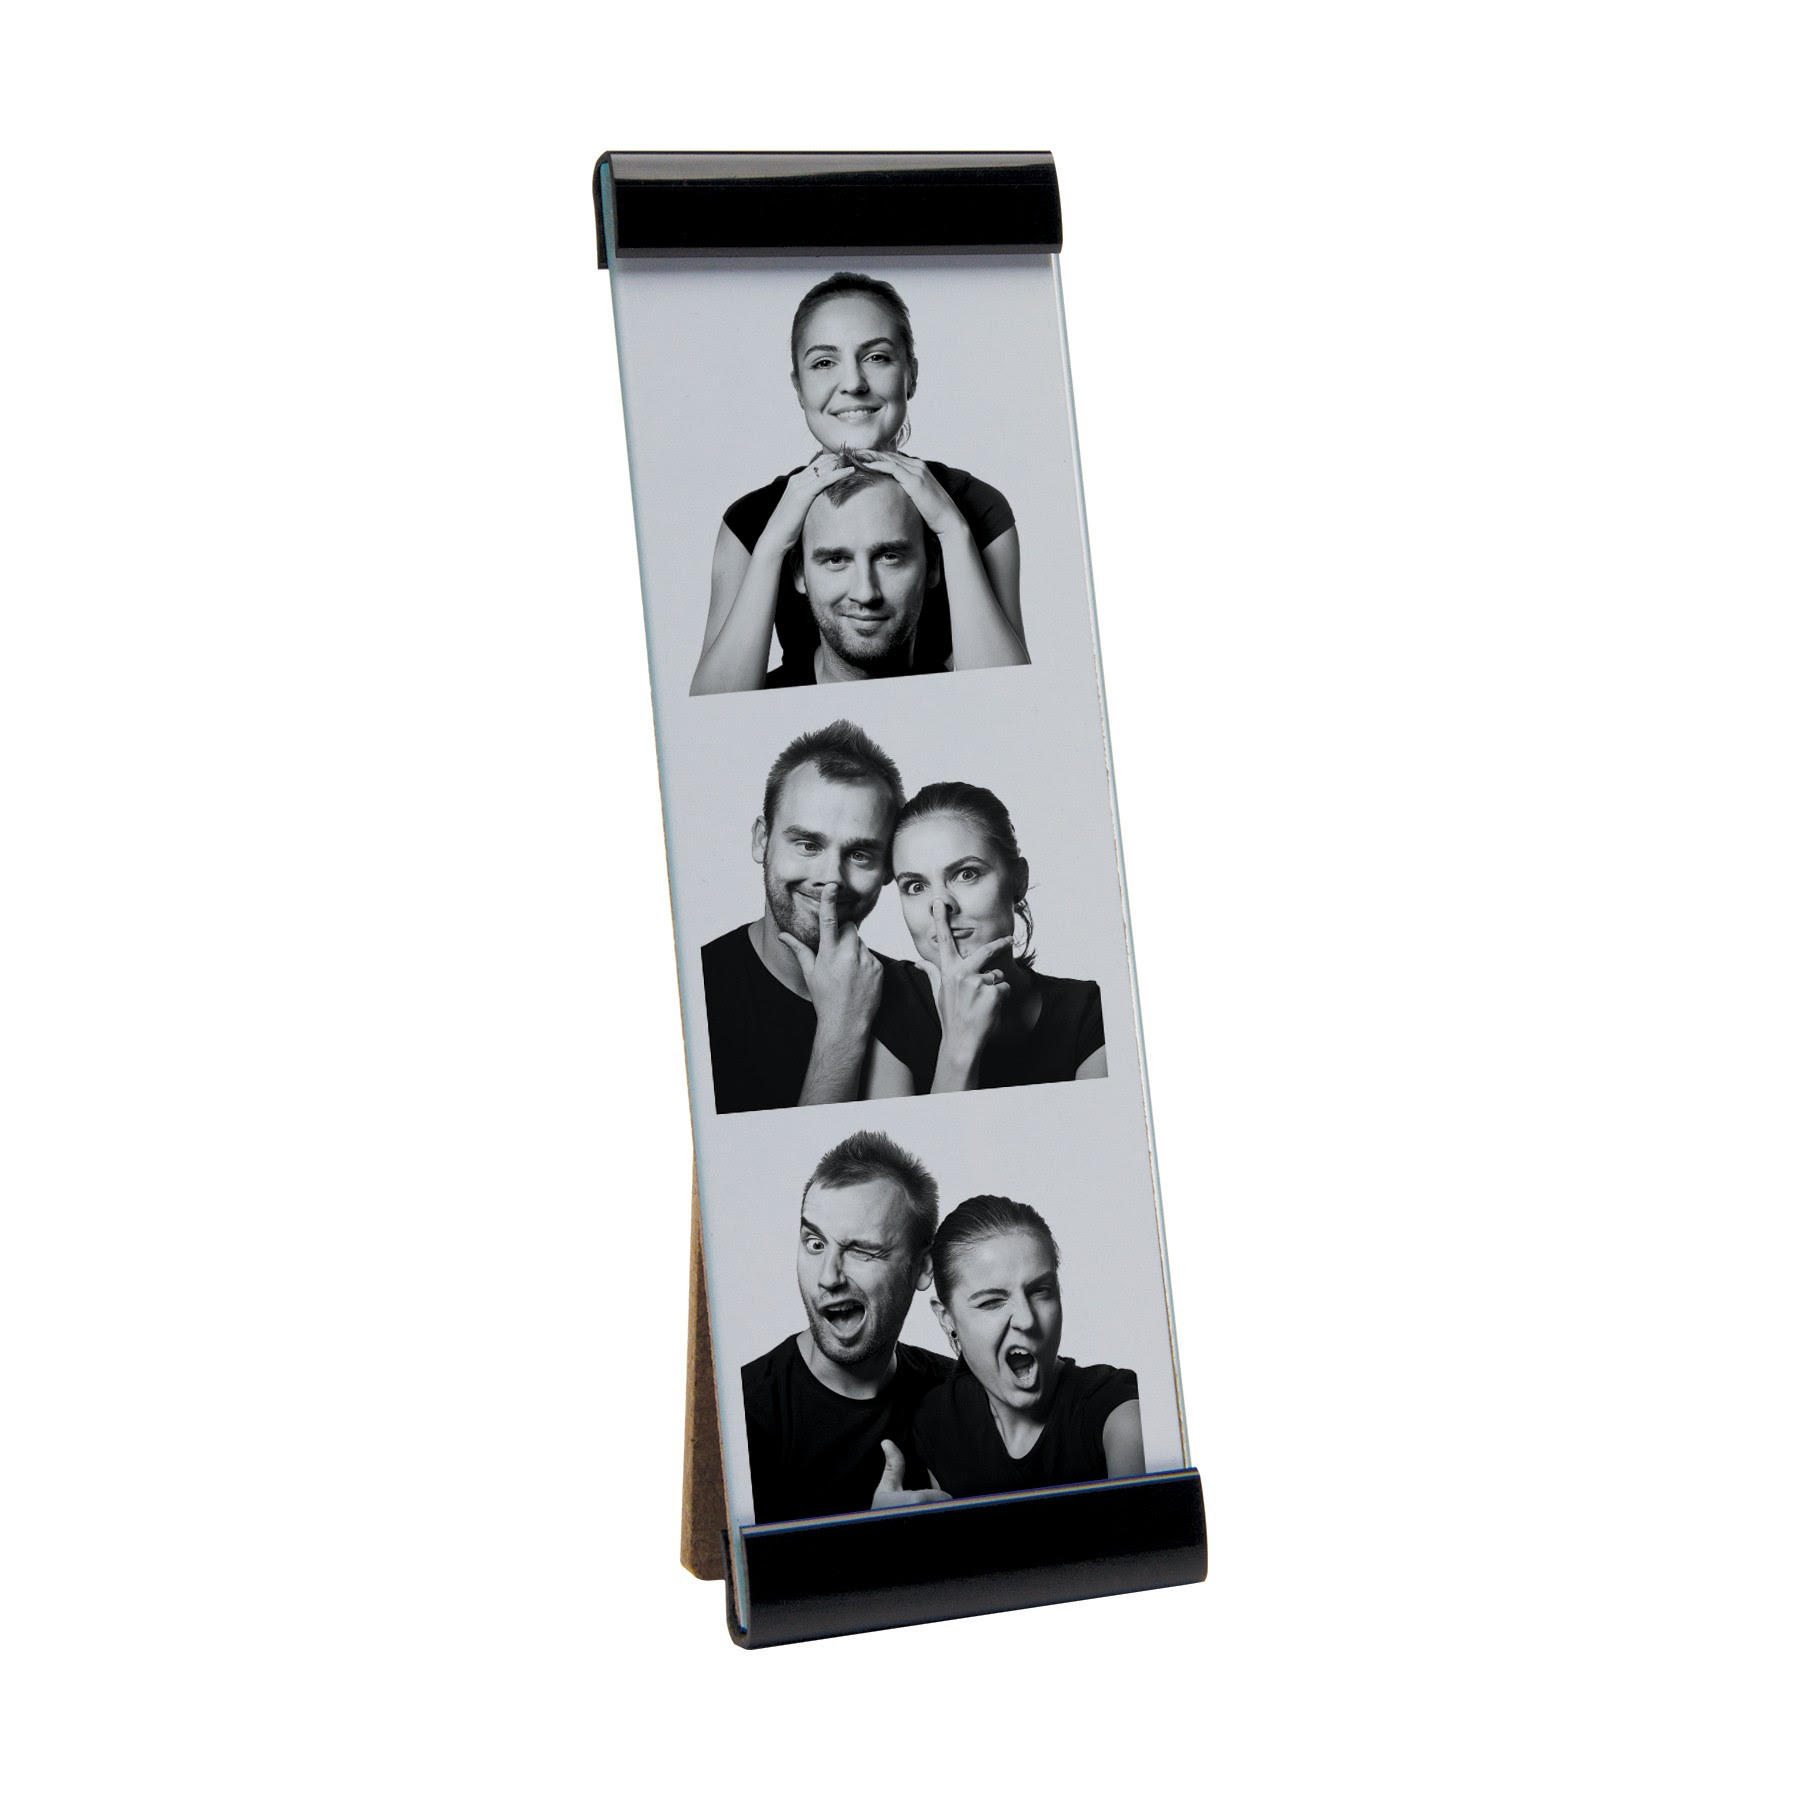 Photo Booth Frames Black Magnetic For 2 X 6 Photo Strips Photo Booth